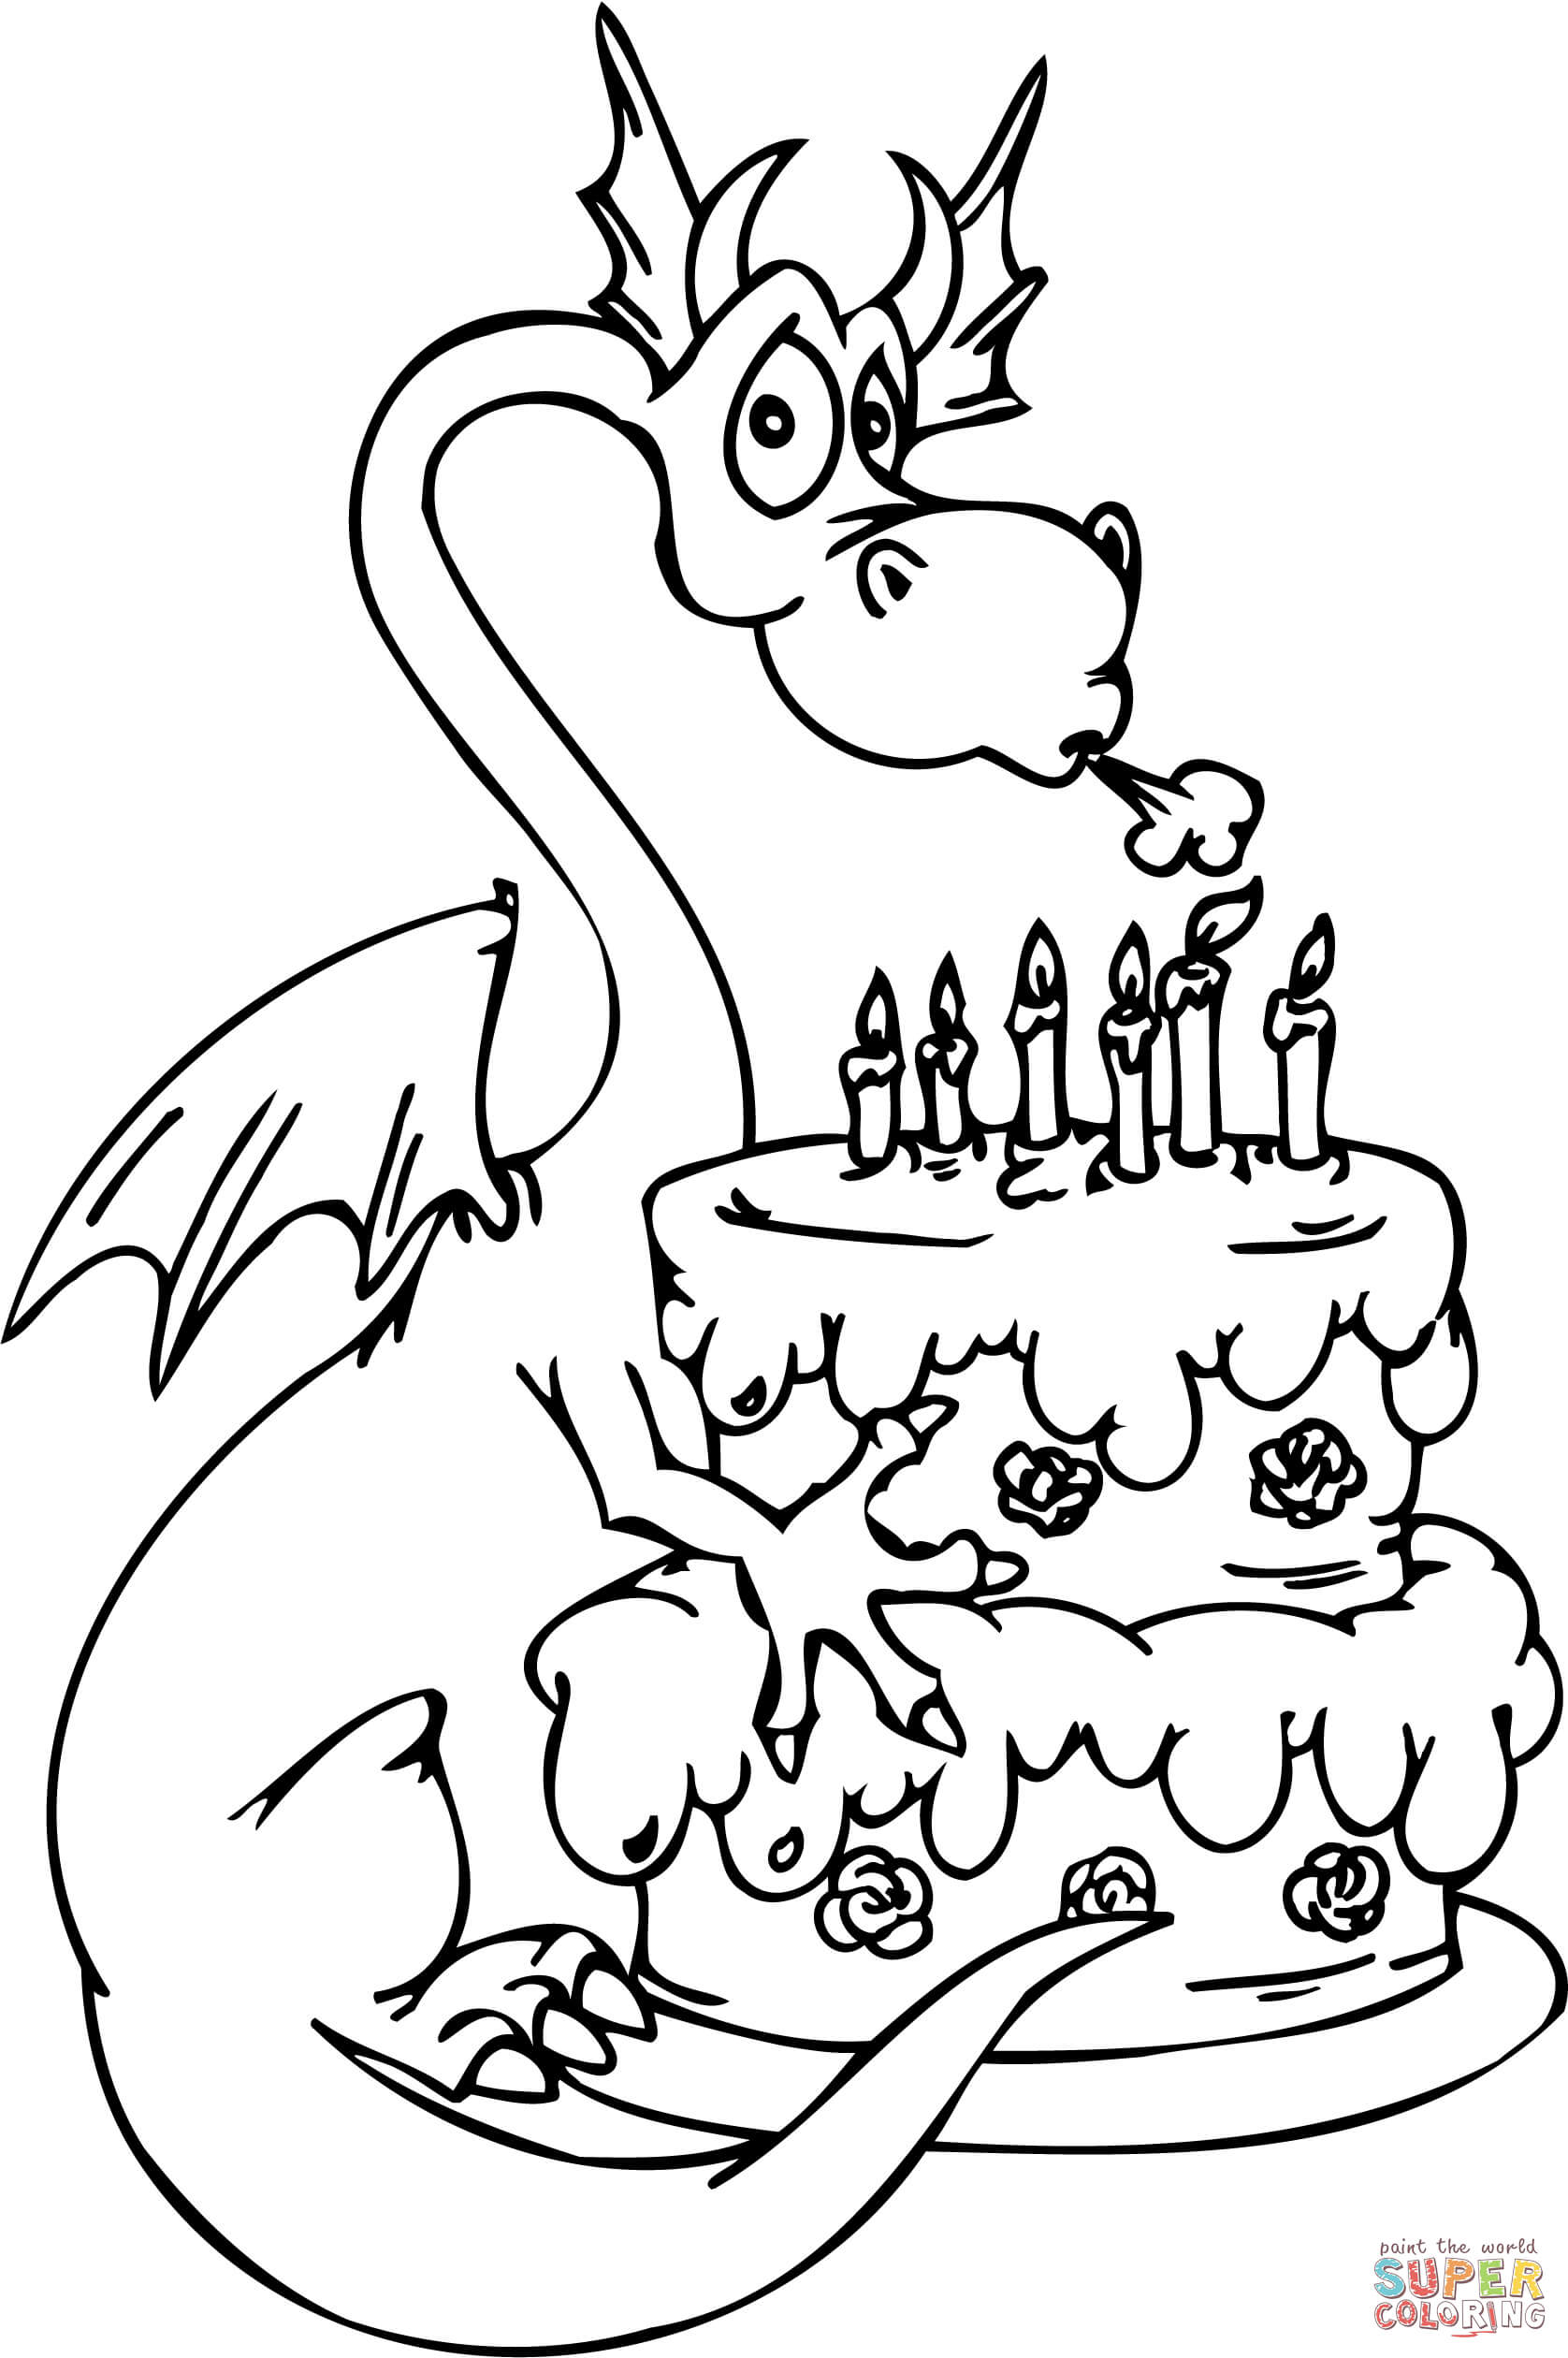 pictures of birthday cakes to colour in ; dragon-and-happy-birthday-cake-coloring-page